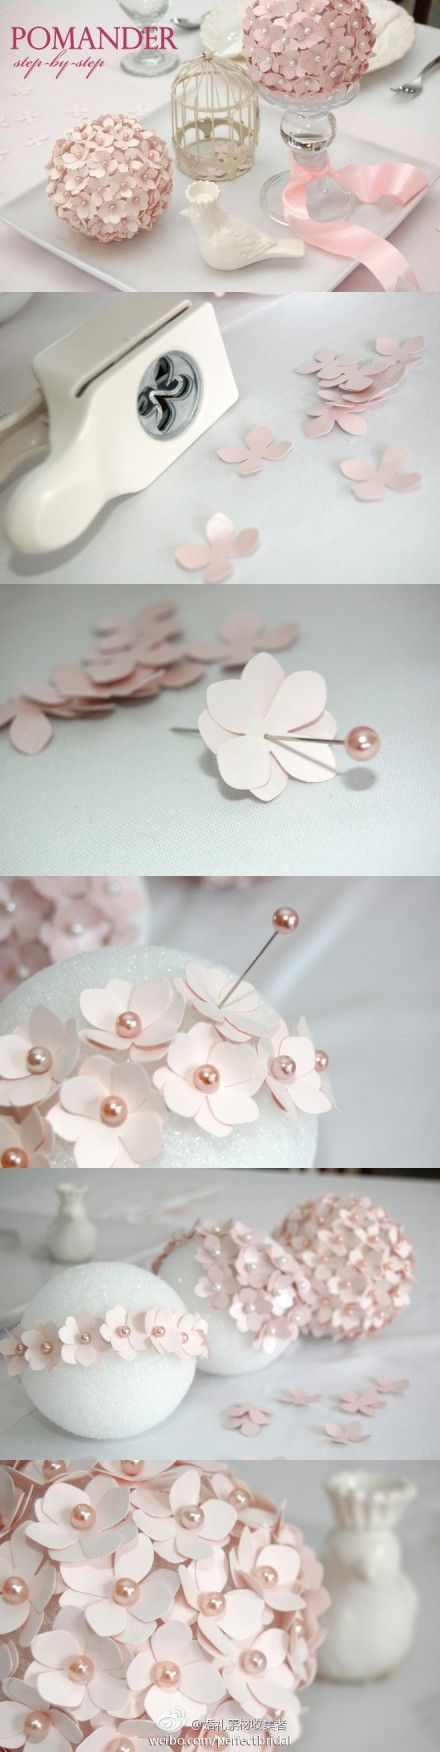 : Ideas, Flowers Ball, Flower Ball, Decoration, Paper Punch, Paper Flowers, Centerpieces, Tables Decor, Center Pieces